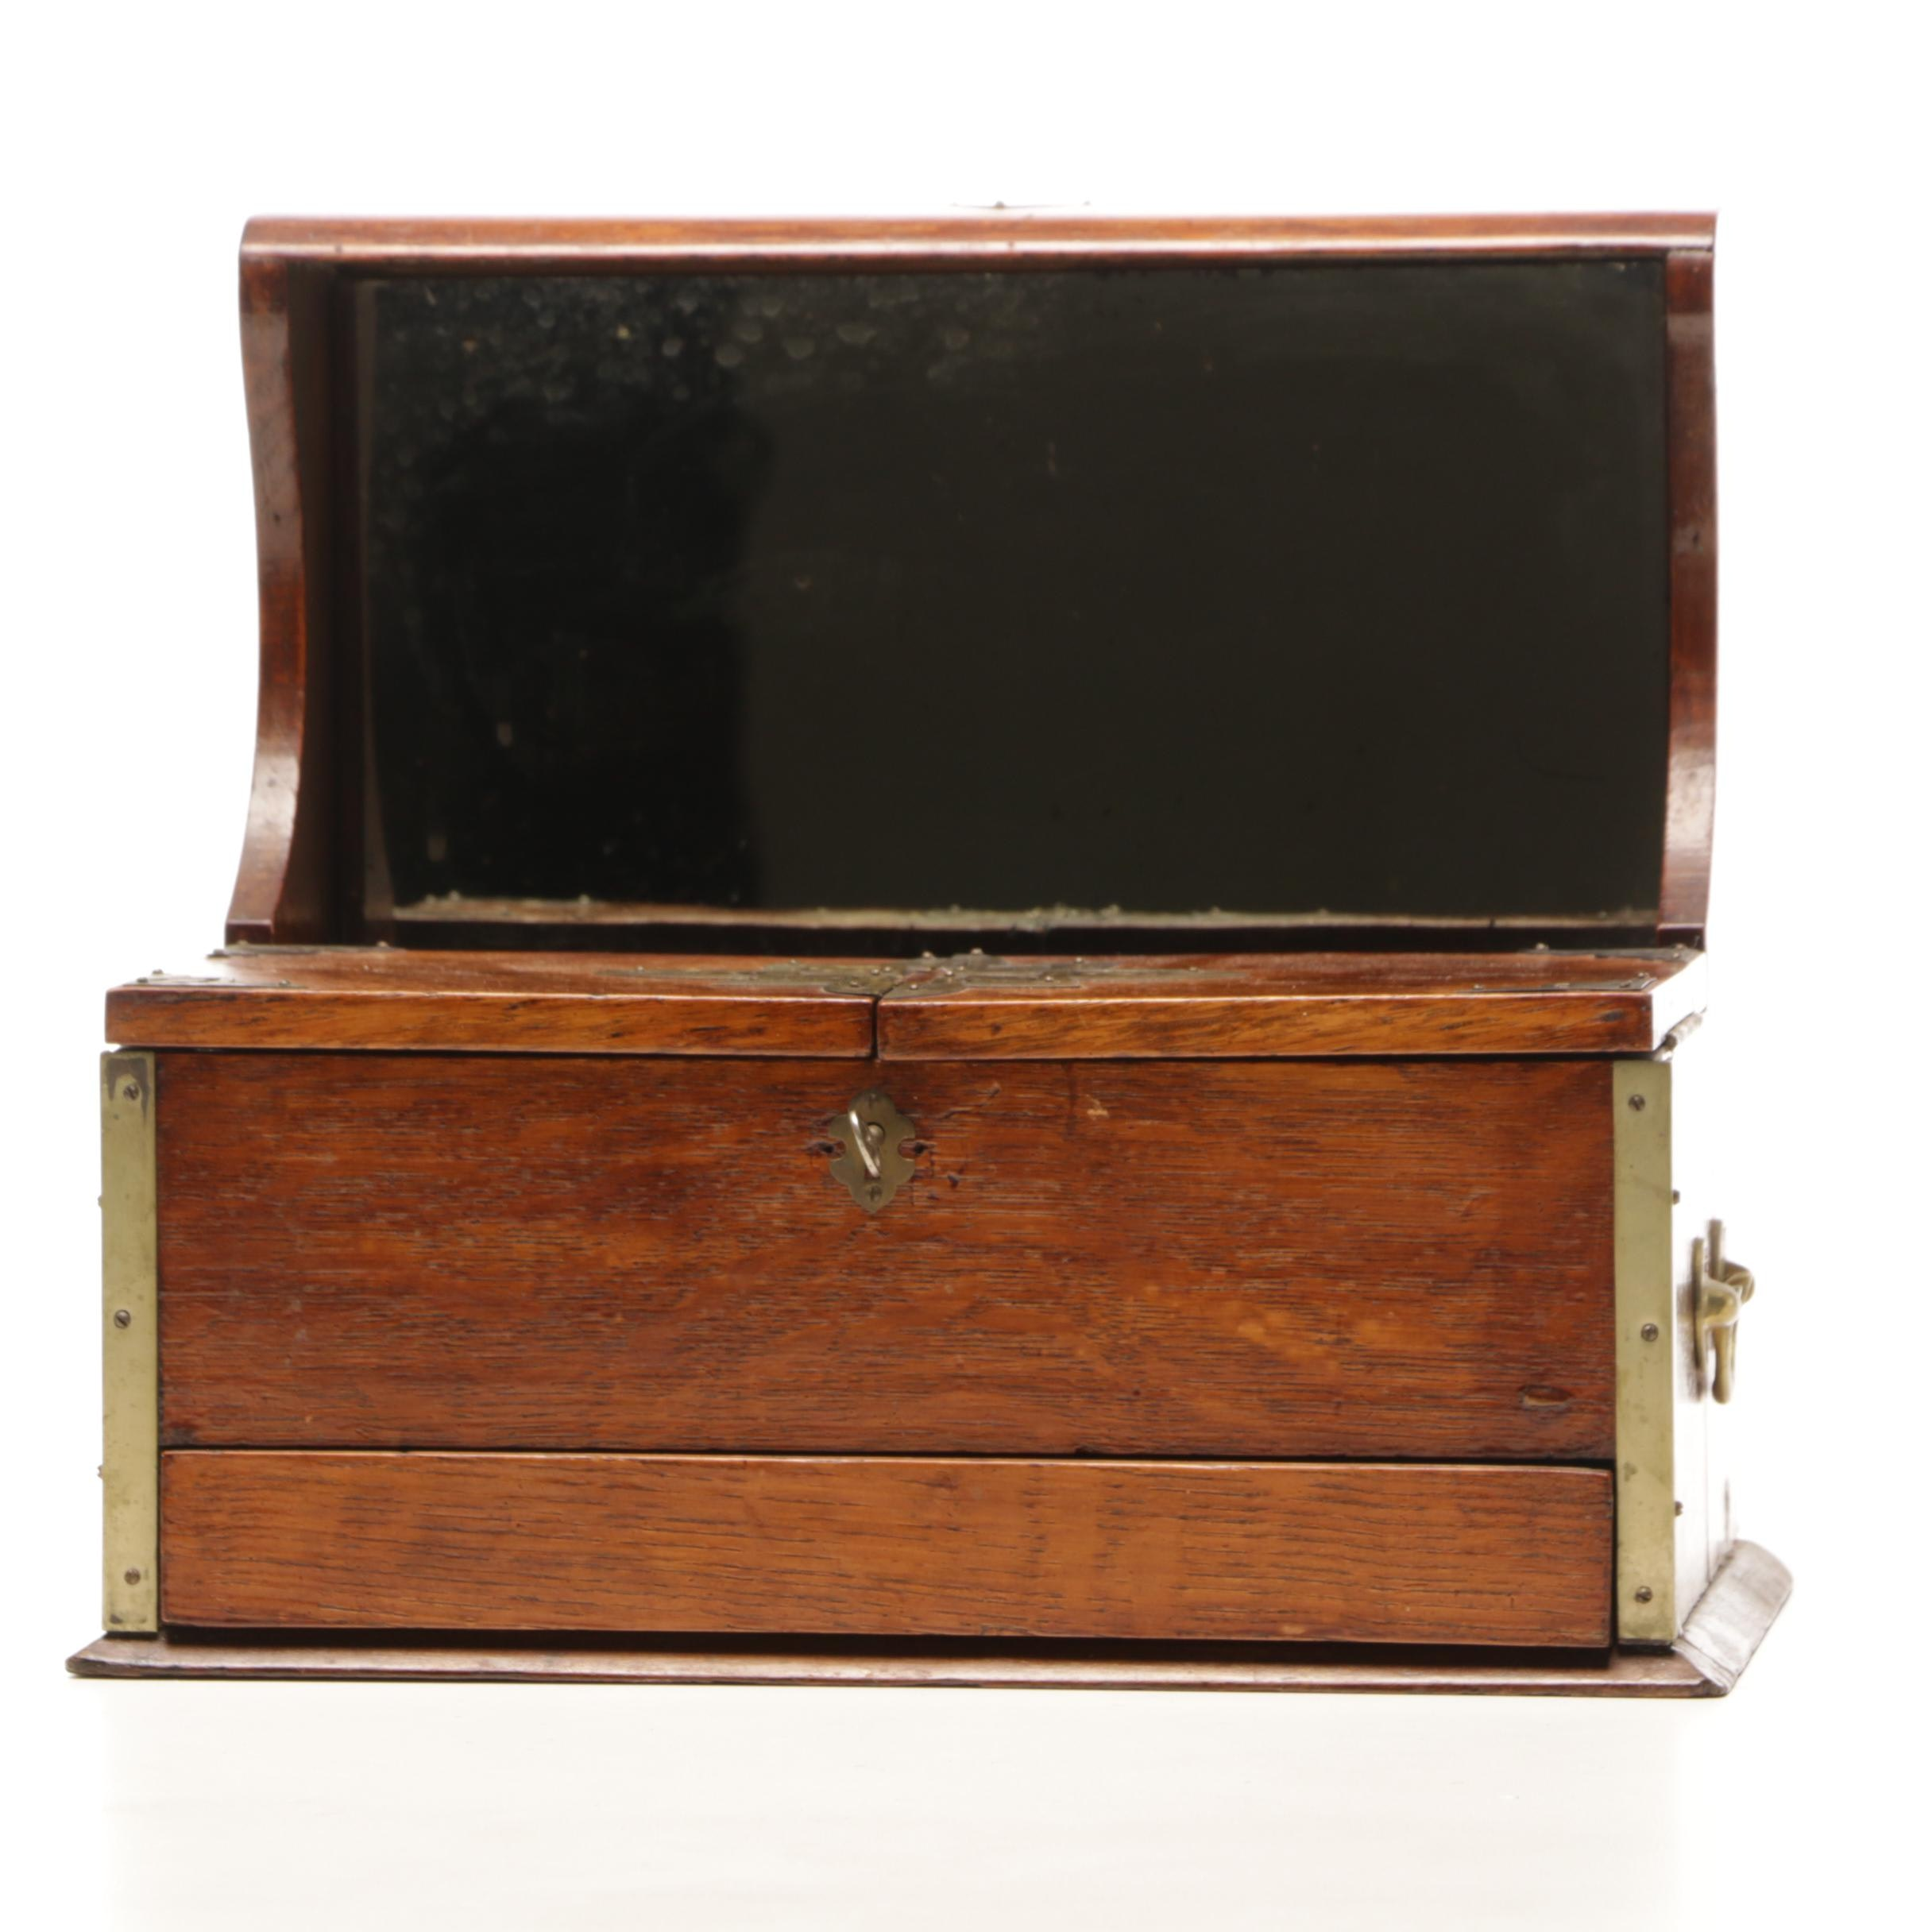 English Tantalus Decanter Box in Oak with Brass Accents